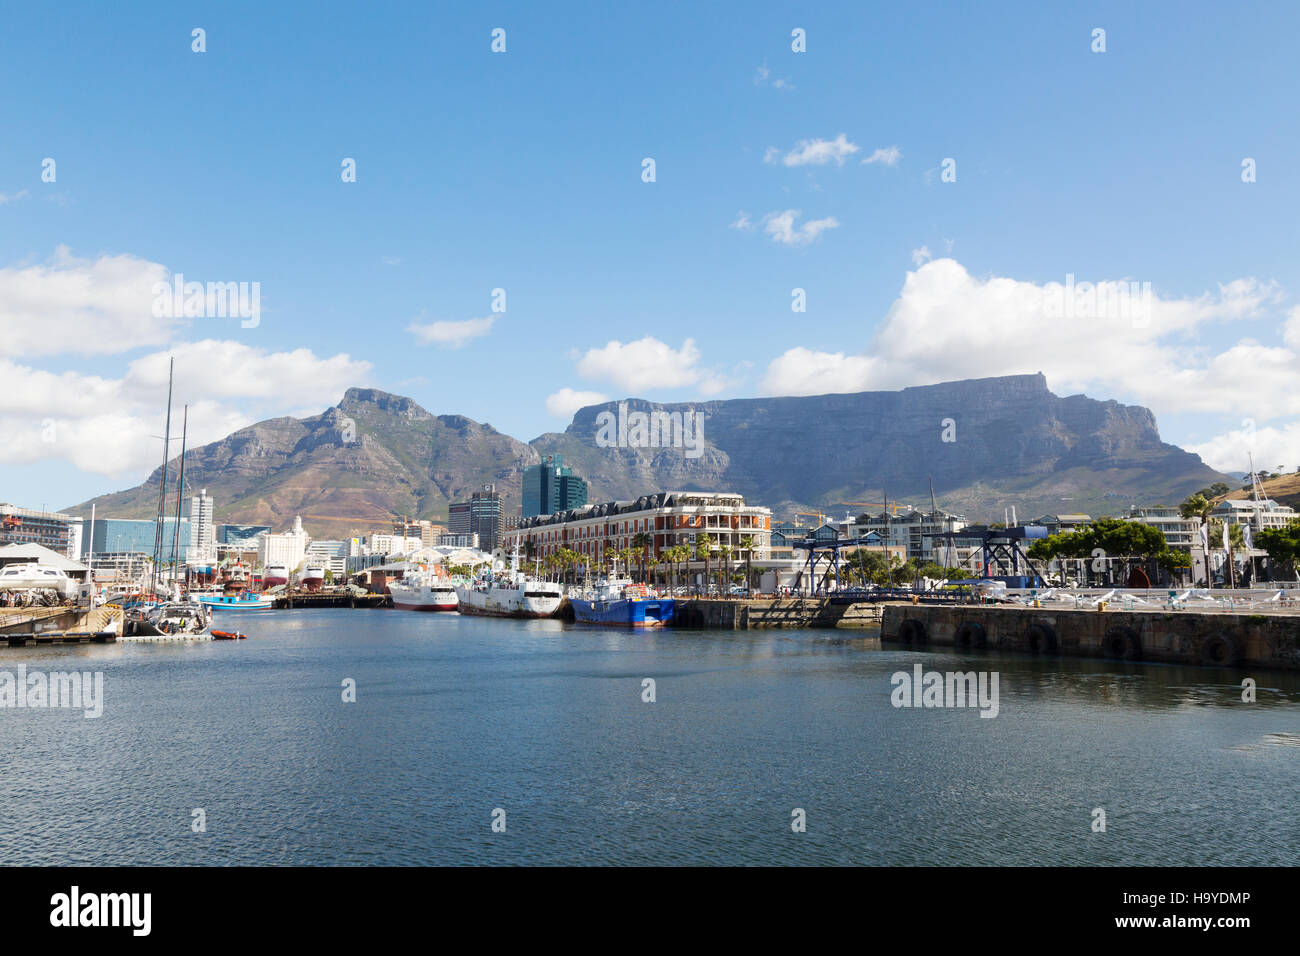 The Waterfront and Table Mountain, Cape Town, South Africa - Stock Image